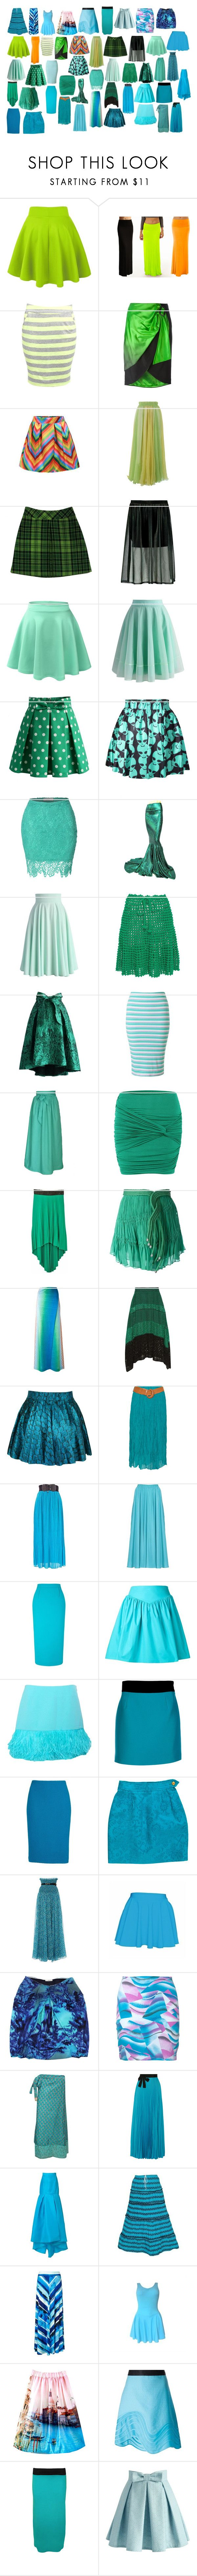 """""""Skirts 8"""" by spellcasters ❤ liked on Polyvore featuring Stylista Original, Maison Margiela, Chicwish, Anna Sui, LE3NO, Helen Rödel, Miss Selfridge, jon & anna, Jay Ahr and Missoni"""